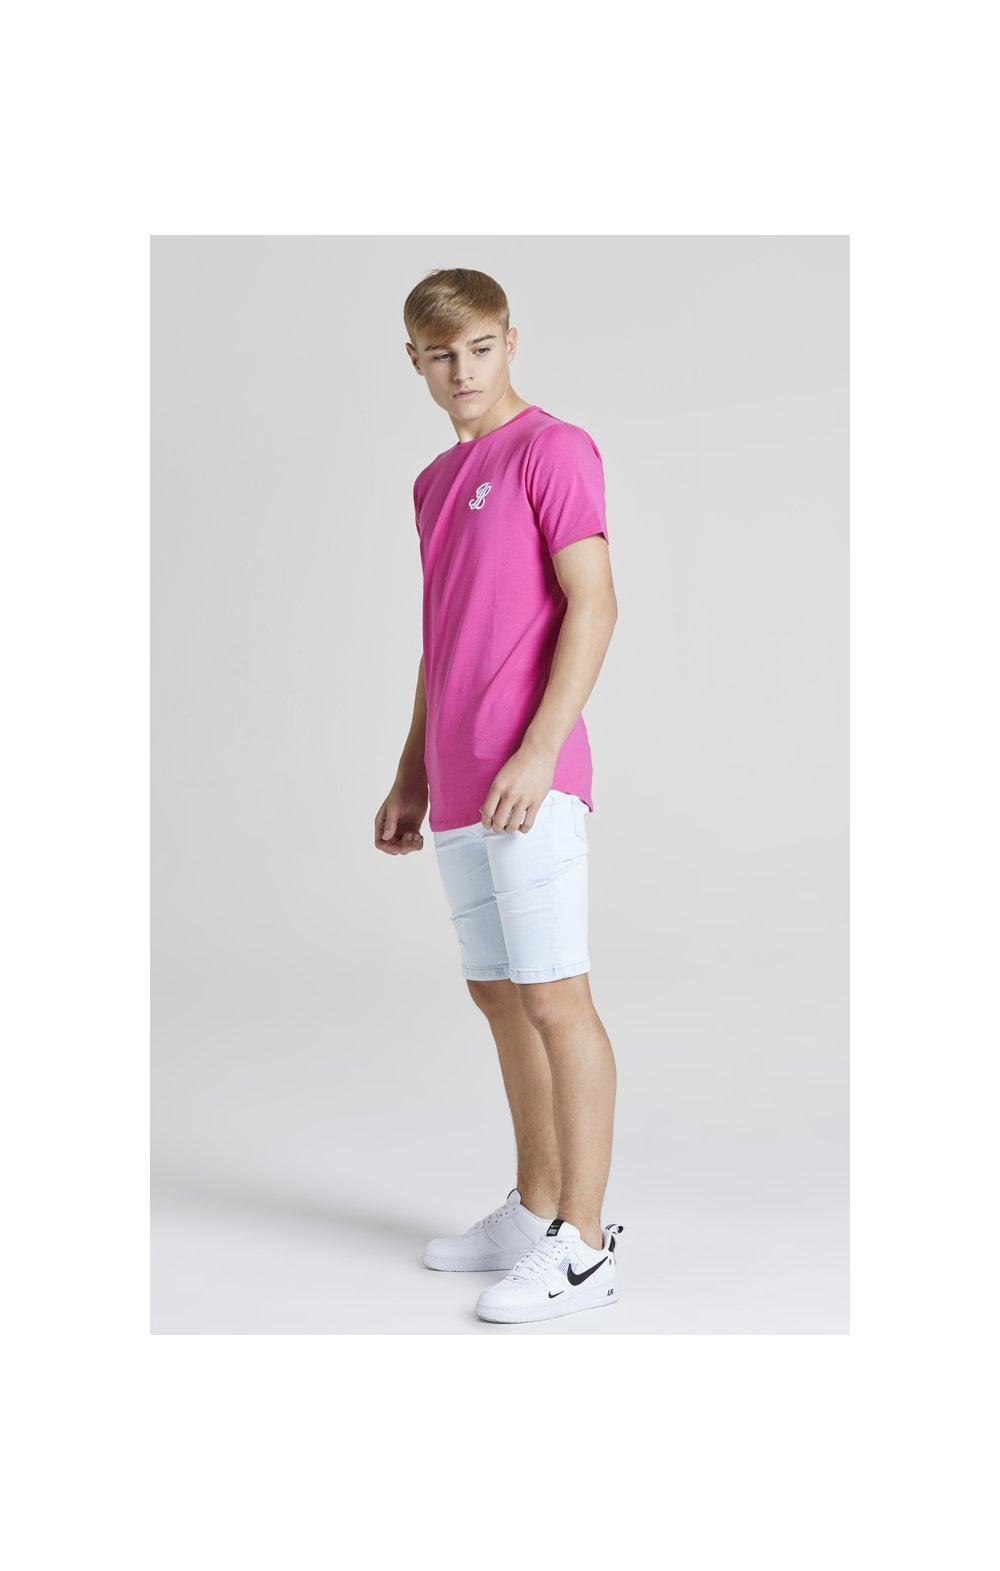 Illusive London Core T-Shirt - Rosa (2)